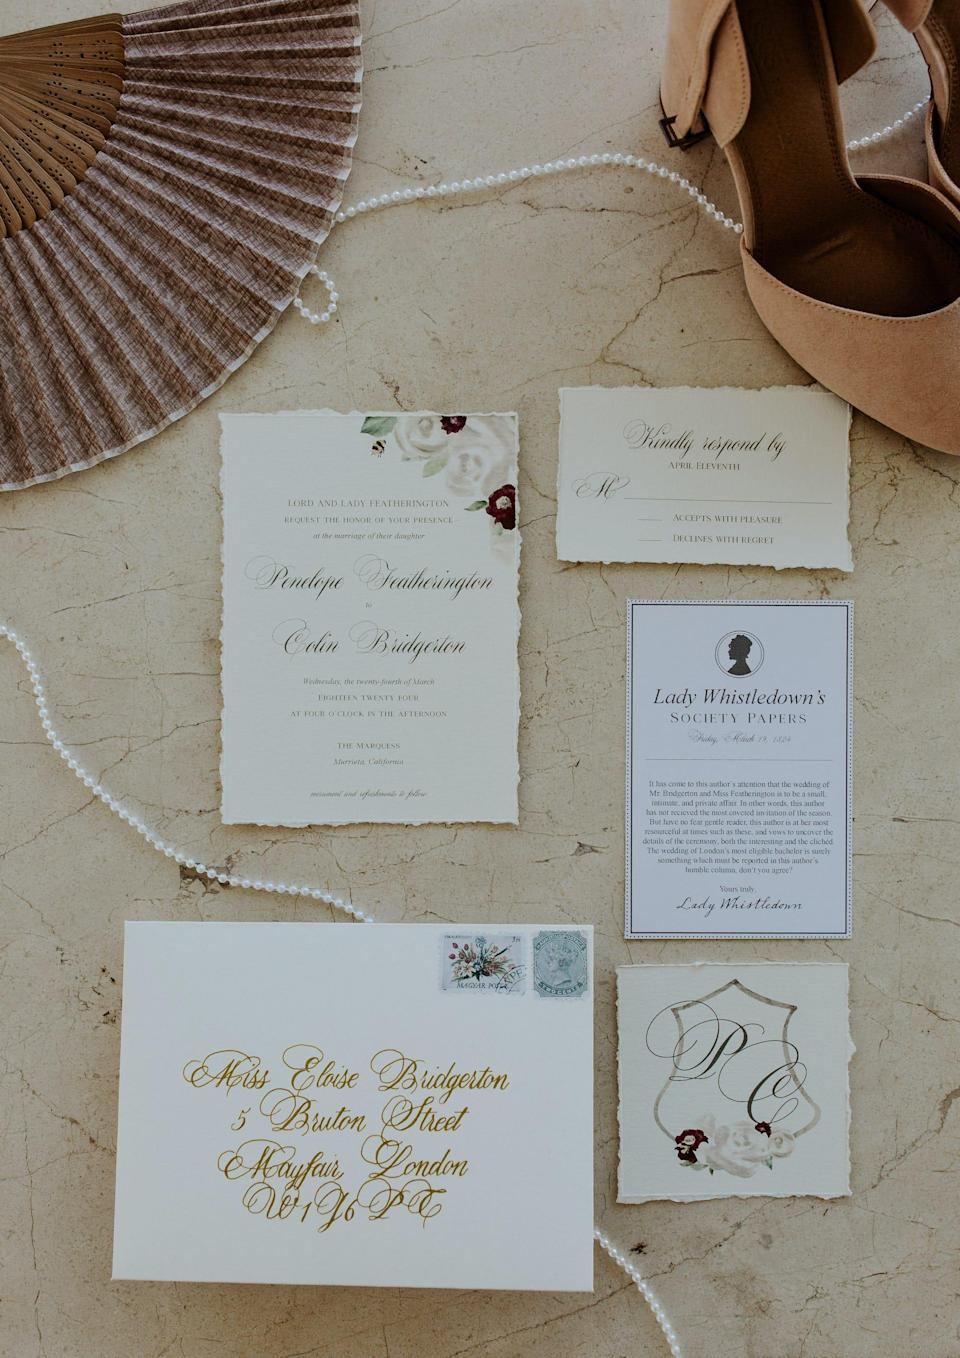 Wedding invitations sit on a table next to a fan, a string of pearls, and a tan shoe.